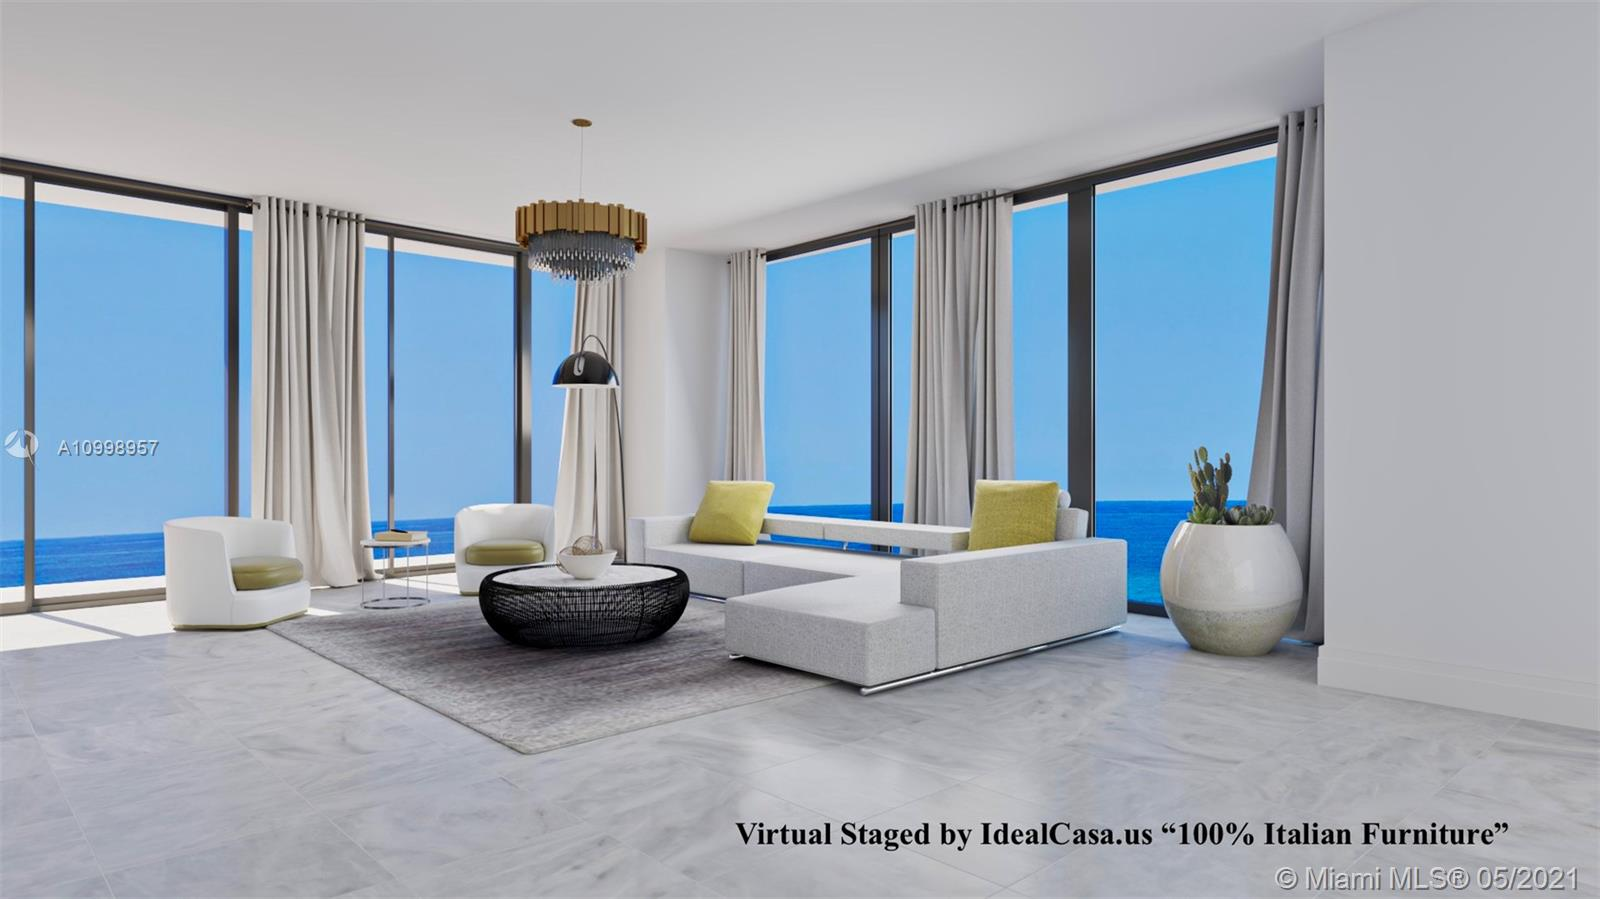 """Turnberry Ocean Club Luxury Residences at Sunny Isles Beach. New construction 2021. Unit 1804 South. Direct Ocean views and Bay views. 4 Bedrooms plus den & 5 1/2 Baths, 3,625 SqFt plus terraces. Private elevator with foyer. This unit has 10' Ceilings, very illuminated. Italian Kitchen """"Snaidero"""", white stone countertops, top-of-the line appliances """"Gaggenau"""". This unit is also available for rent. Master bedroom with 2 walk-in closets. Large master Bathroom. Building with six floors amenities, beach service, three swimming pools, private dining, Hydrotherapy Spa, fitness center, entertainment. Bar and restaurant with full kitchen. Privileges of Turnberry Isle Resort, including golf, tennis, and Marina activities."""